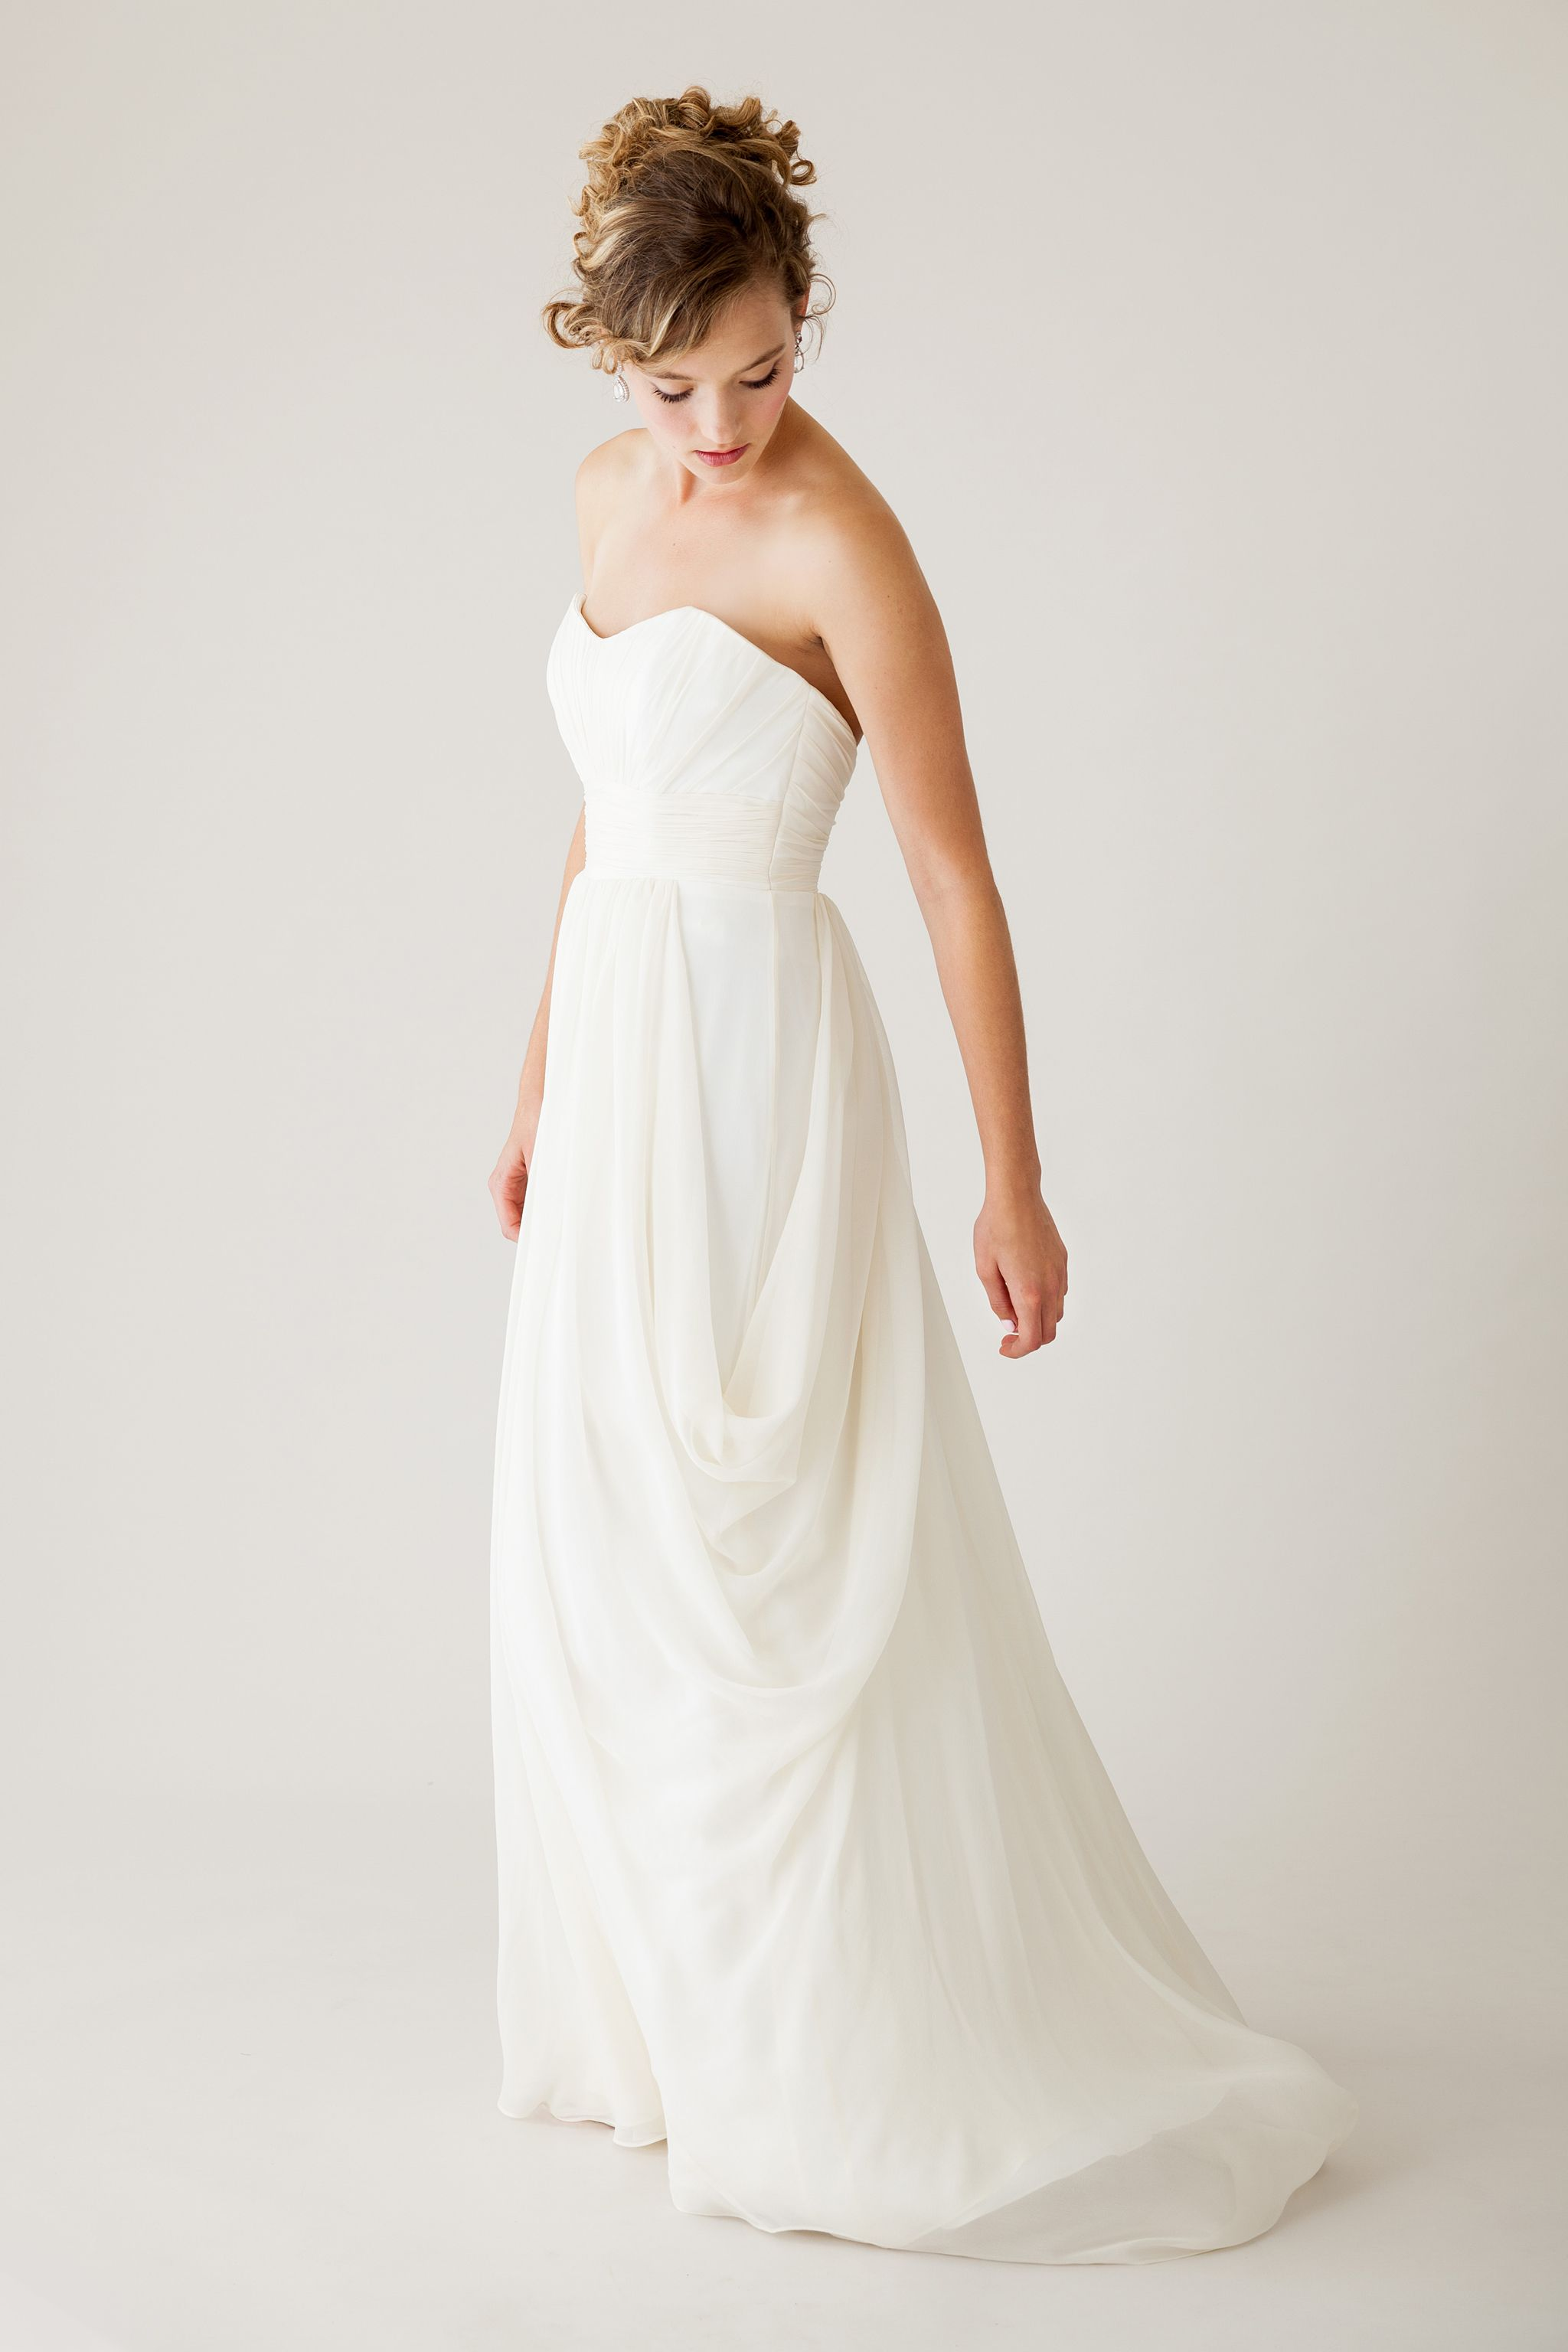 Ethereal wedding dress  The Goddess from astridmerced Flower crowns and warm breezes are